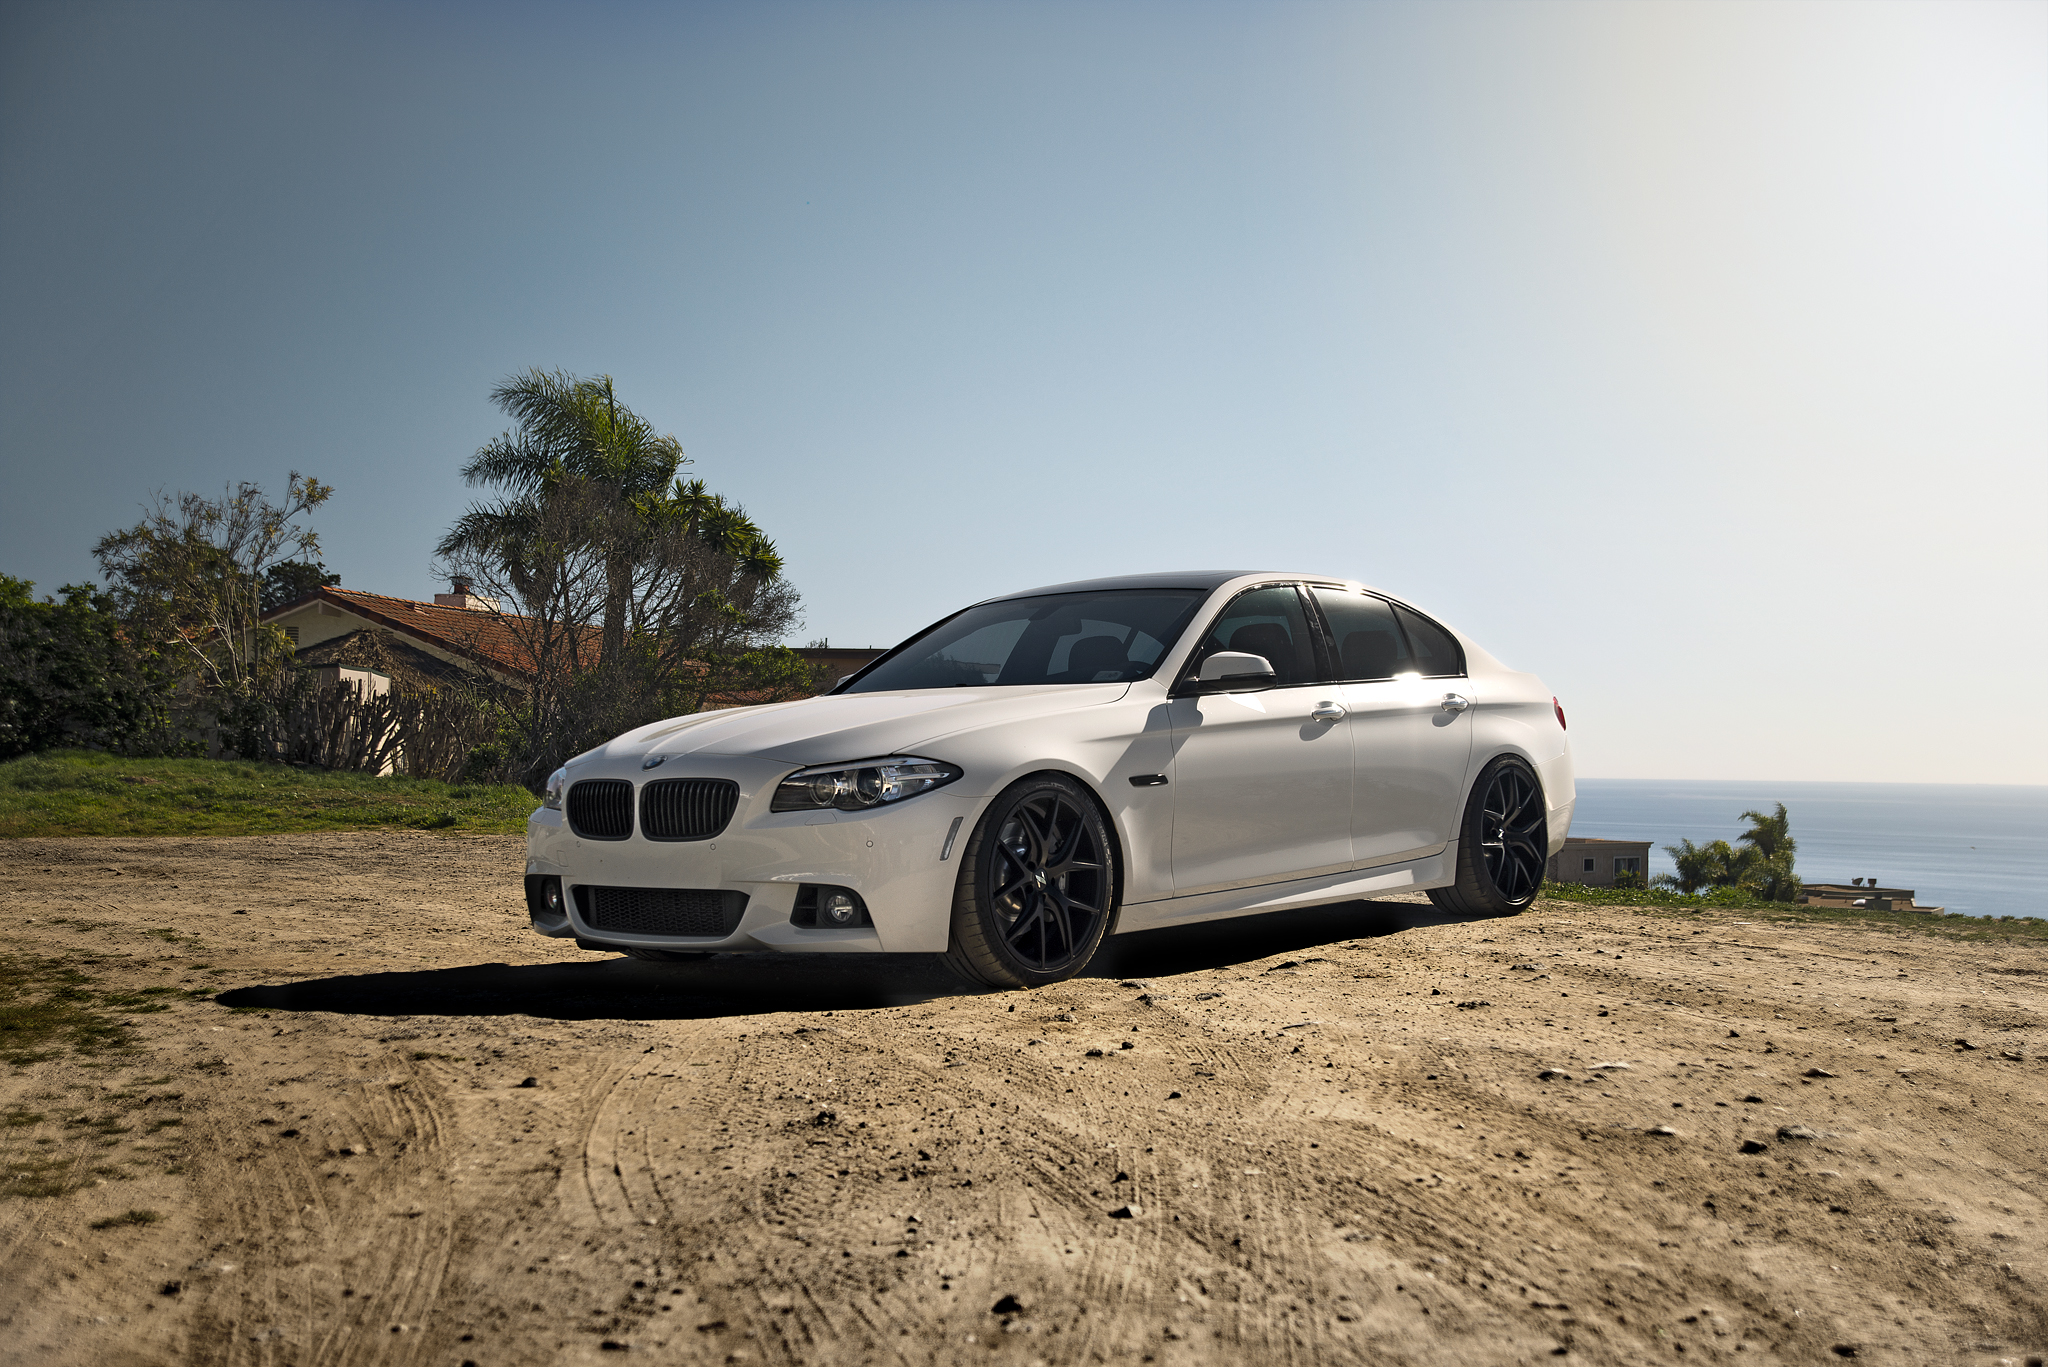 BMW F10 535i White ZS05